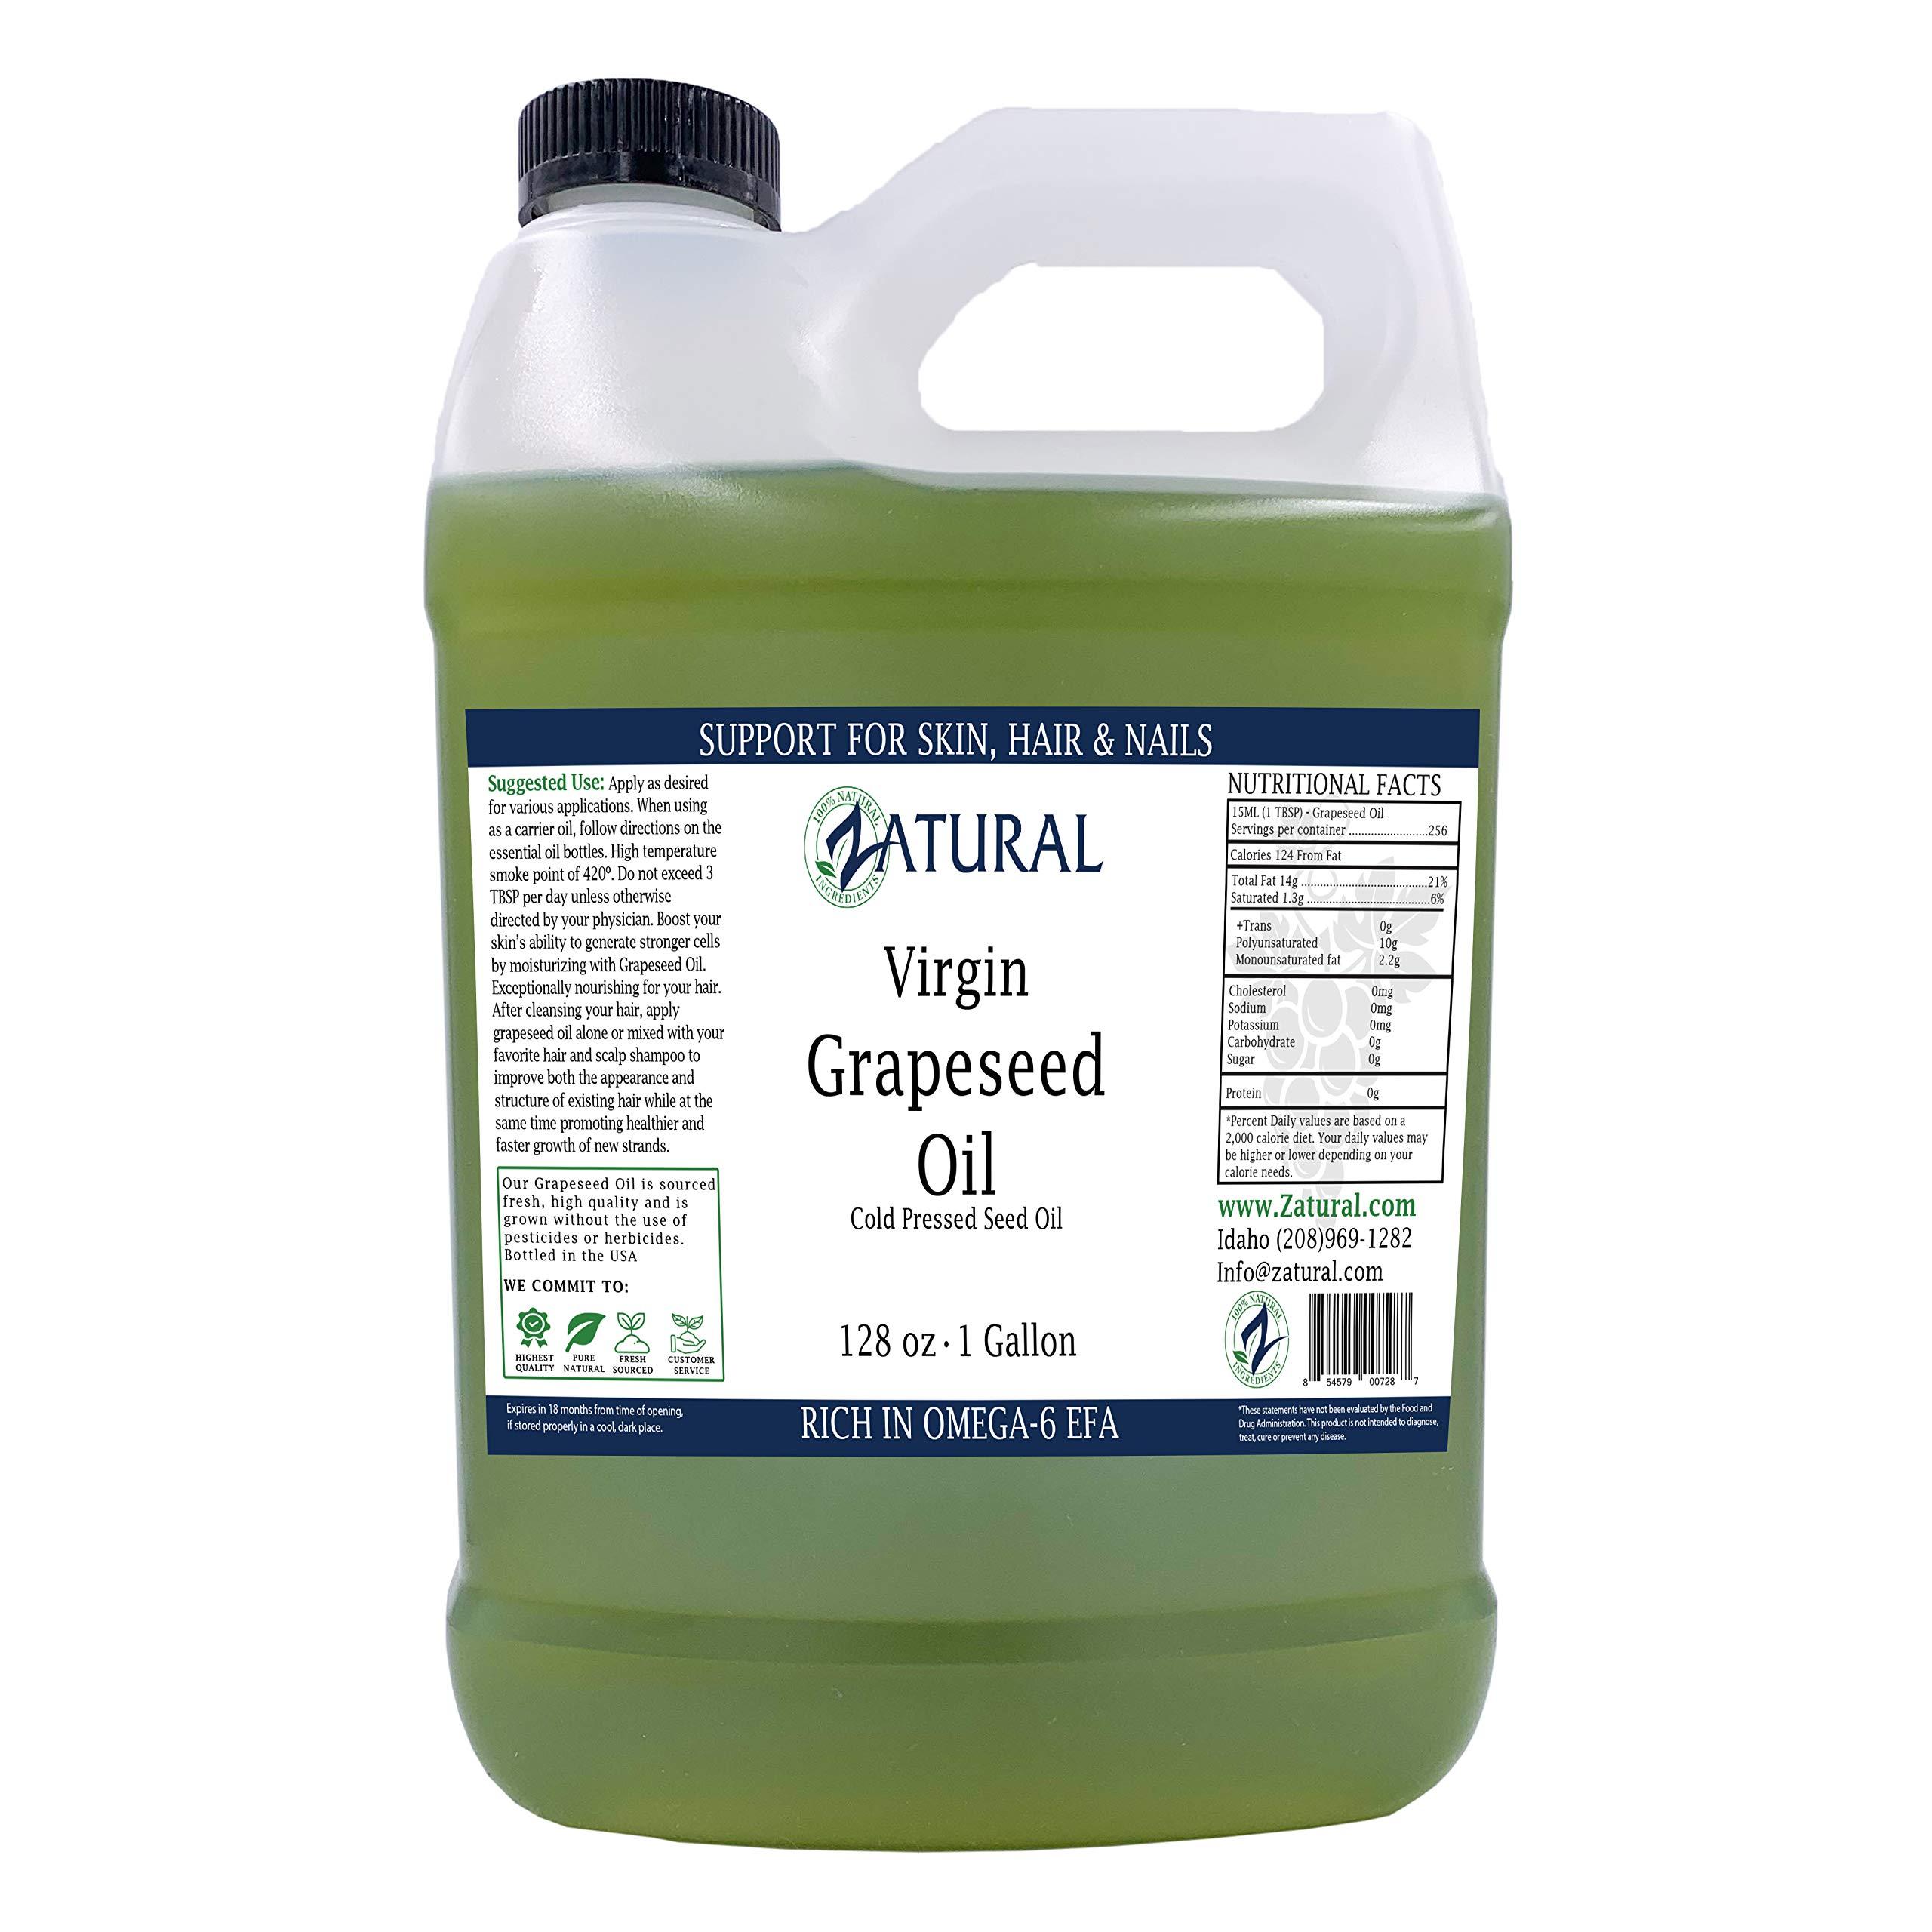 GrapeSeed Oil-Cold Pressed, Virgin, Undiluted, 100% Pure Grape Seed Oil (128 Ounce (1 Gallon))